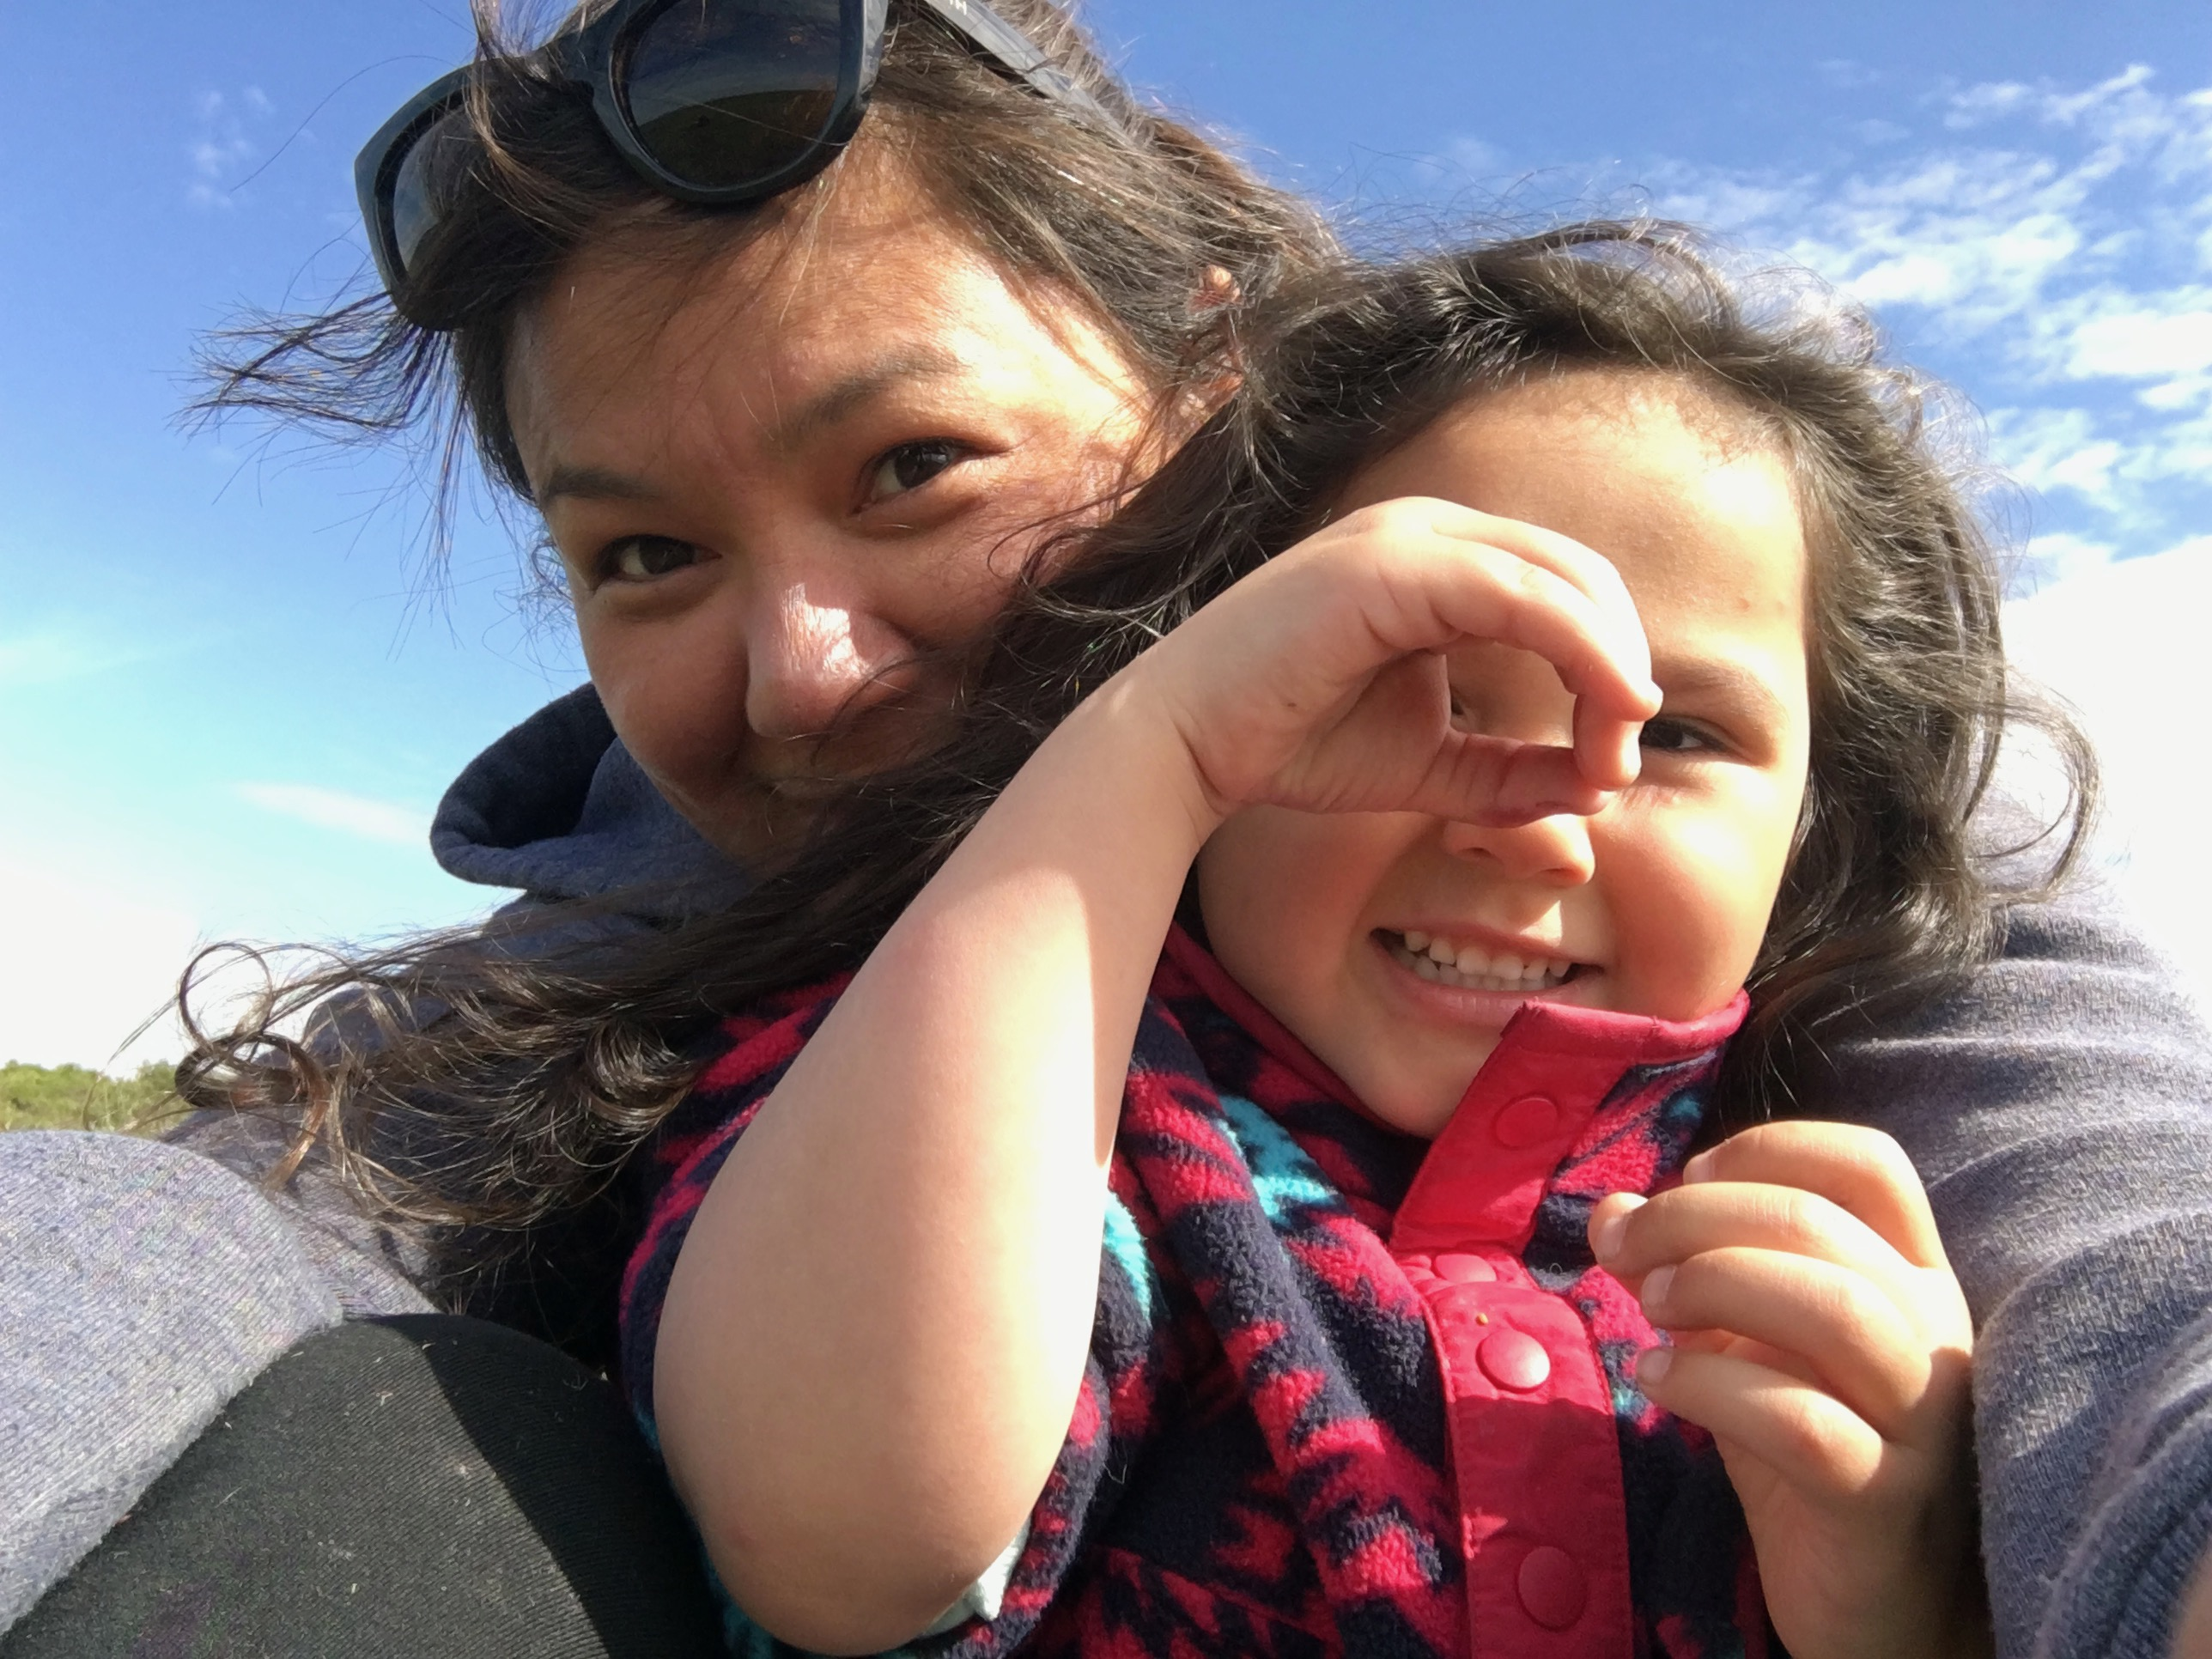 Inupiaq: The language I can write and speak, but don't understand